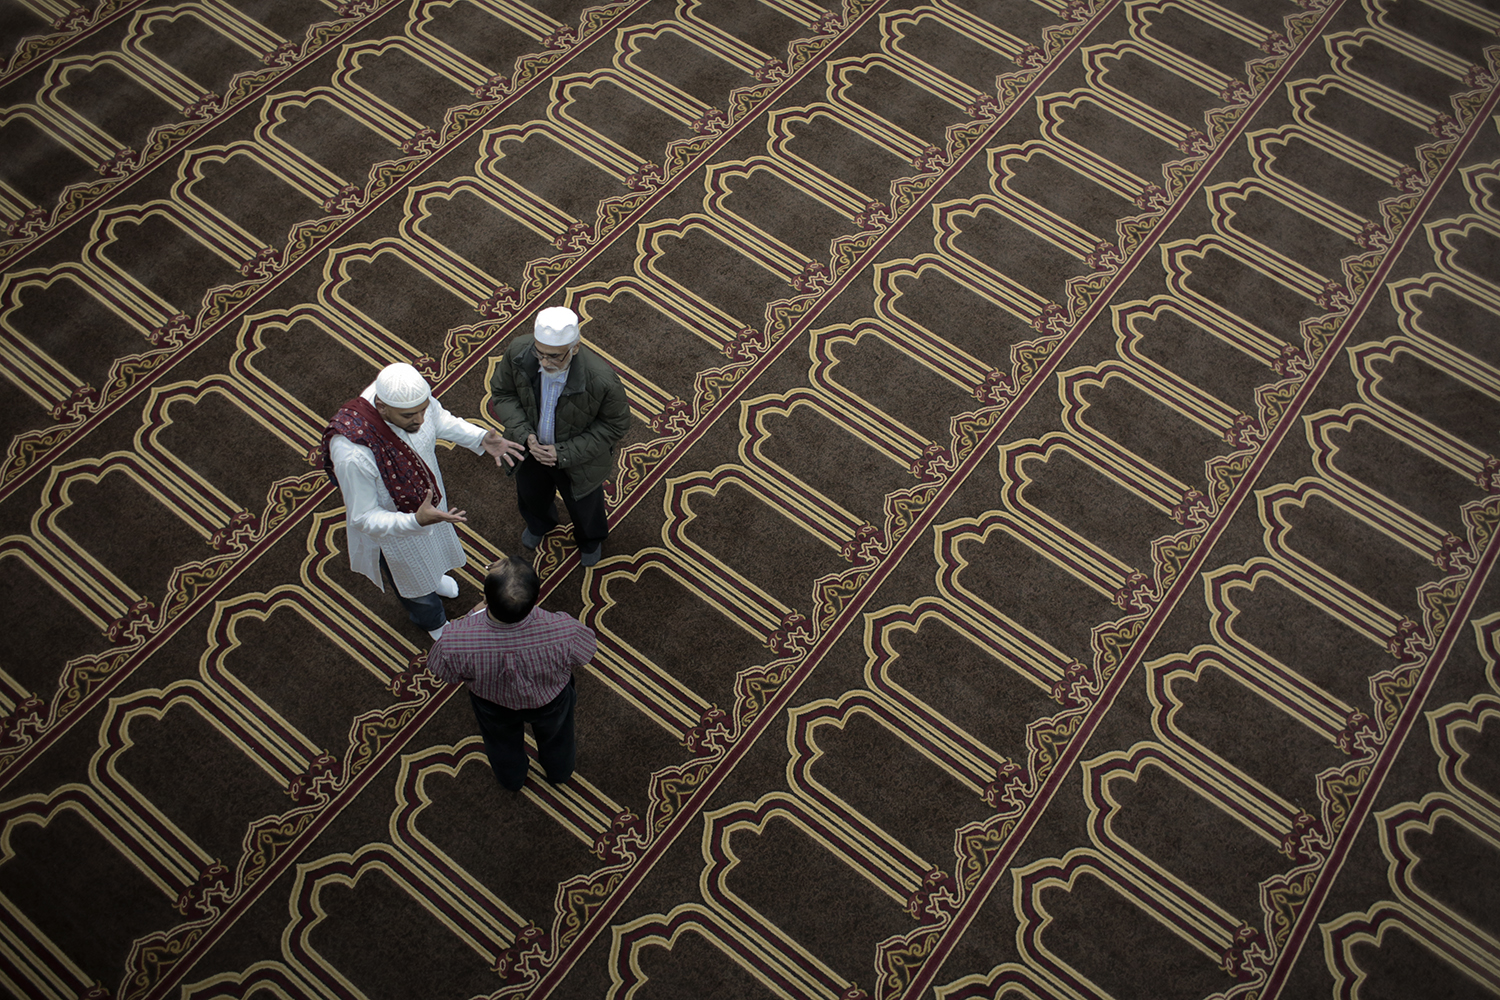 Jameel Syed, left, from Auburn Hills speaks with Noorulla Mohammed, bottom, and Mohammad Zahooruddin, top, both from Farmington Hills before the call to prayer on Thursday, Apr. 2, 2014 at the Tawheed Center in Farmington Hills. Syed plans to travel the United States to do the Muslim call to prayer in each of the 50 states over the next month. Tim Galloway/Special to DFP